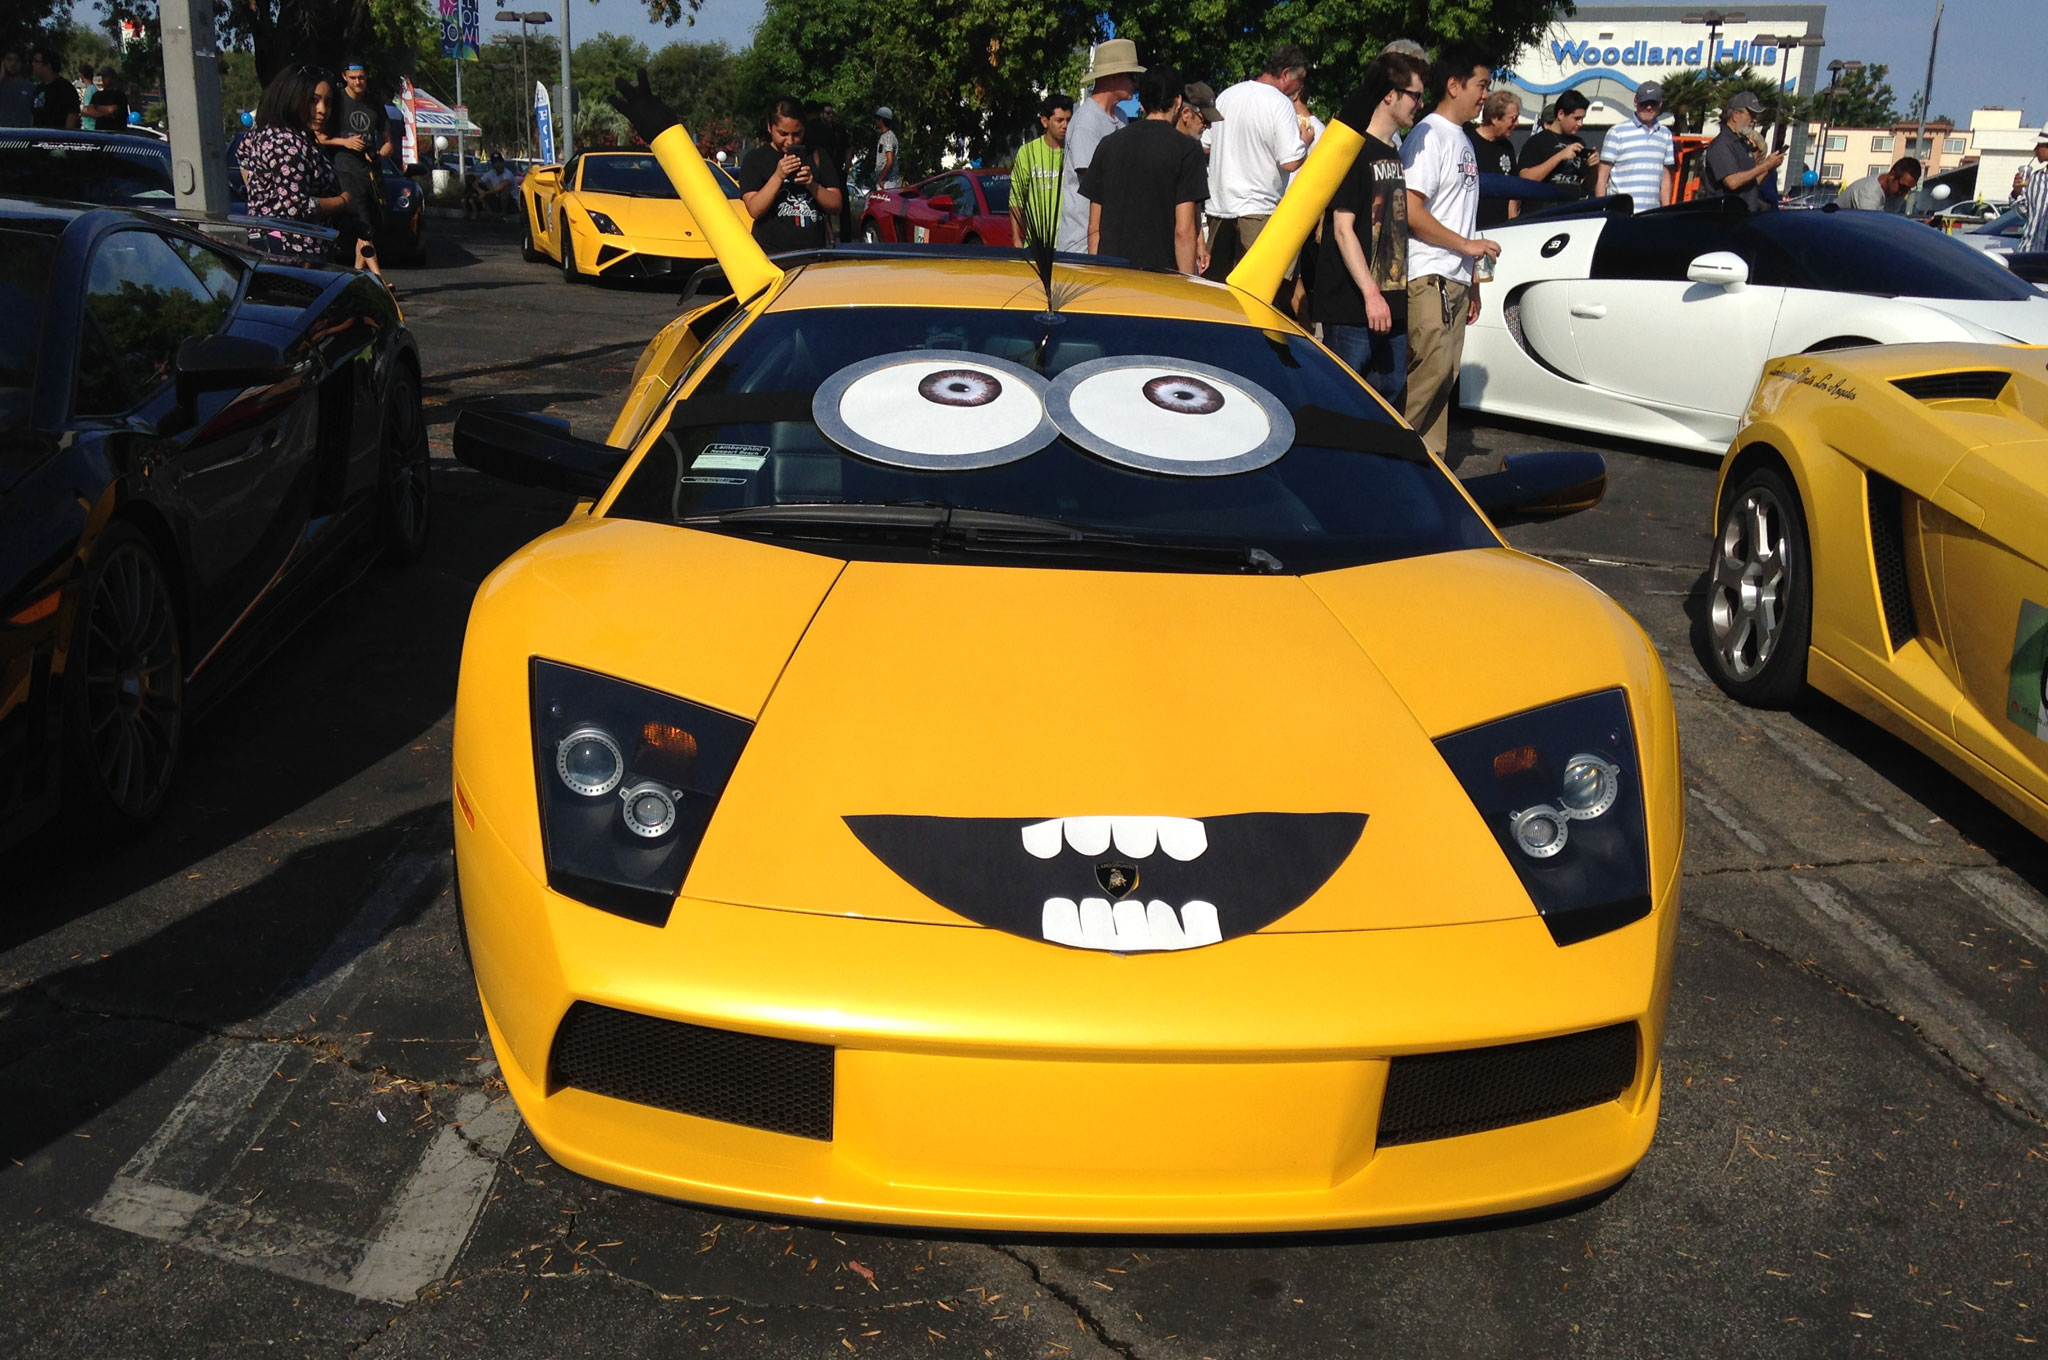 Can't help but feel sorry for the loss of dignity a Murcielago must feel being dressed up as a minion.